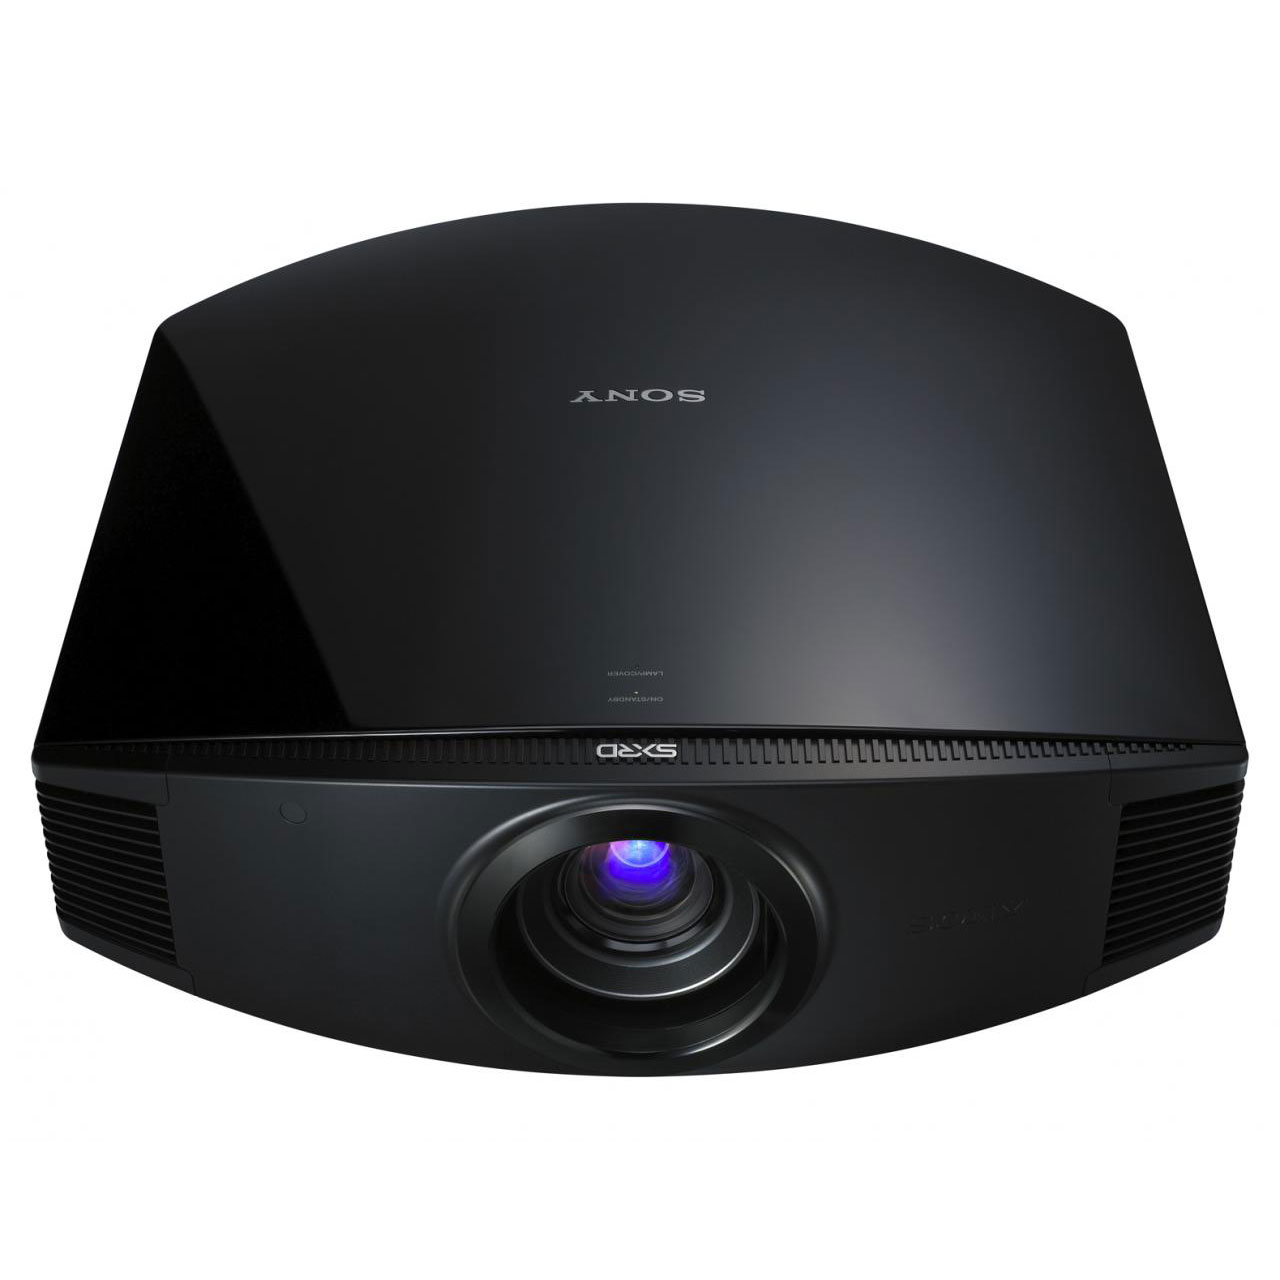 sony vpl hw30es 3d home cinema projector price in pakistan home shopping. Black Bedroom Furniture Sets. Home Design Ideas